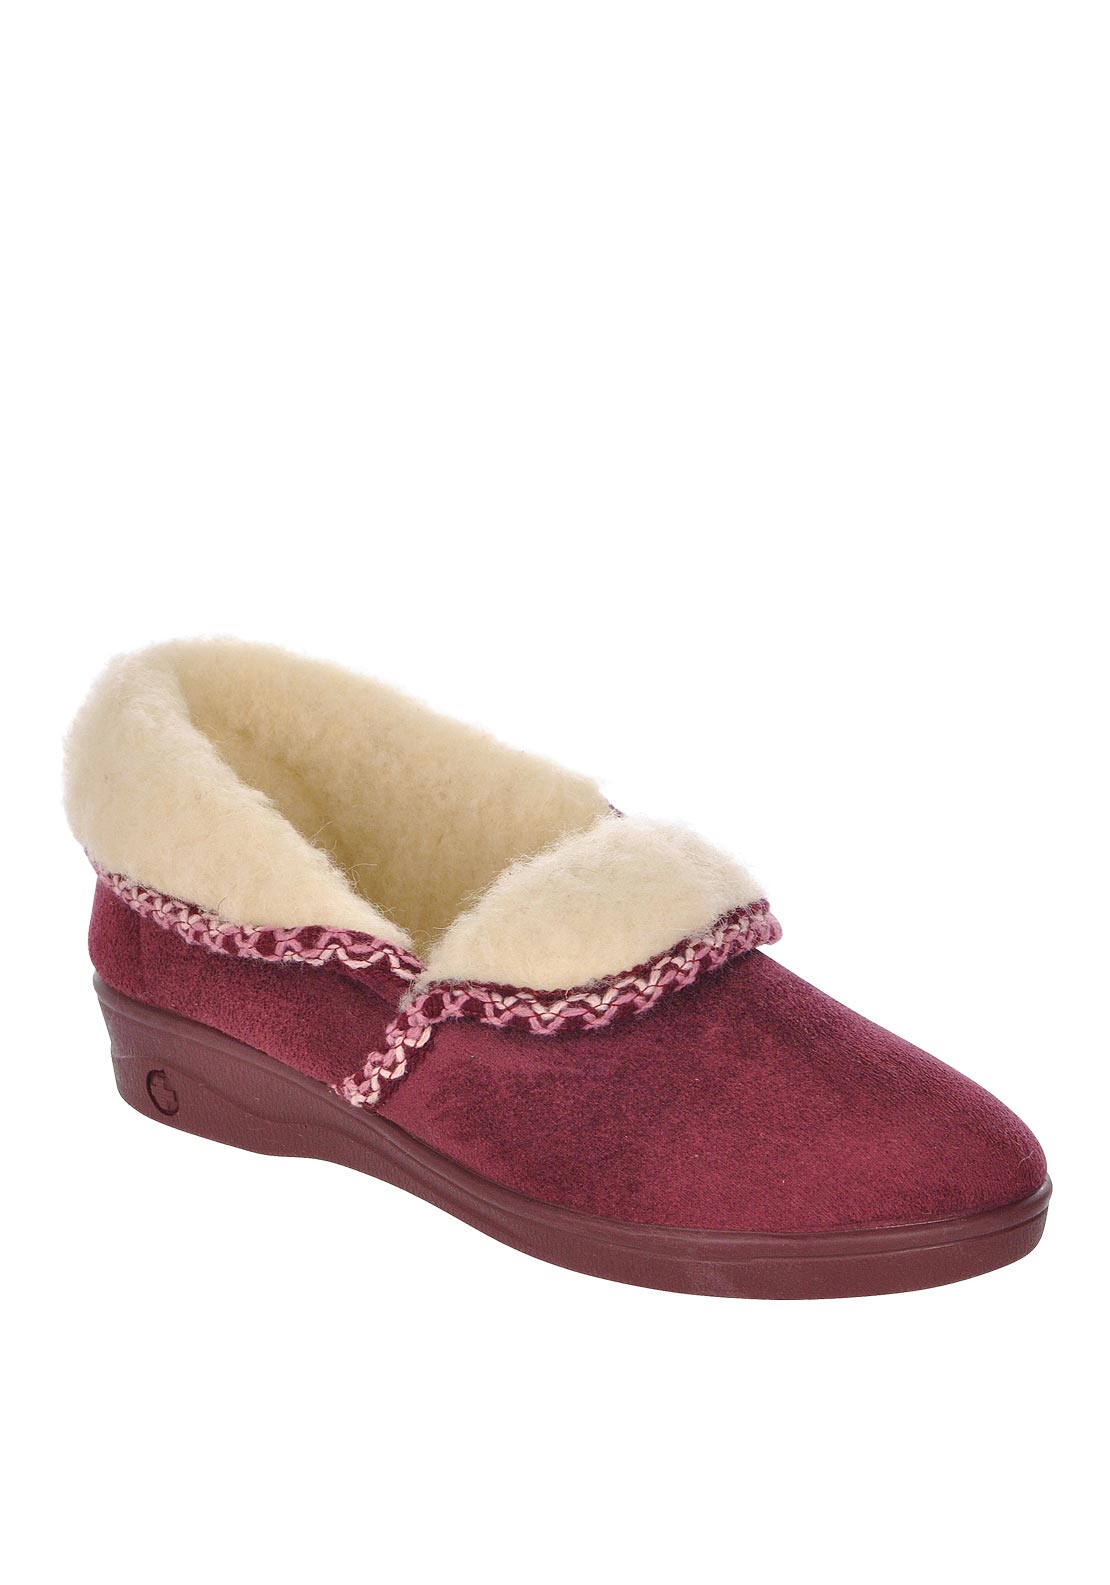 Lotus Womens Celia Sheep Skin Slippers, Wine